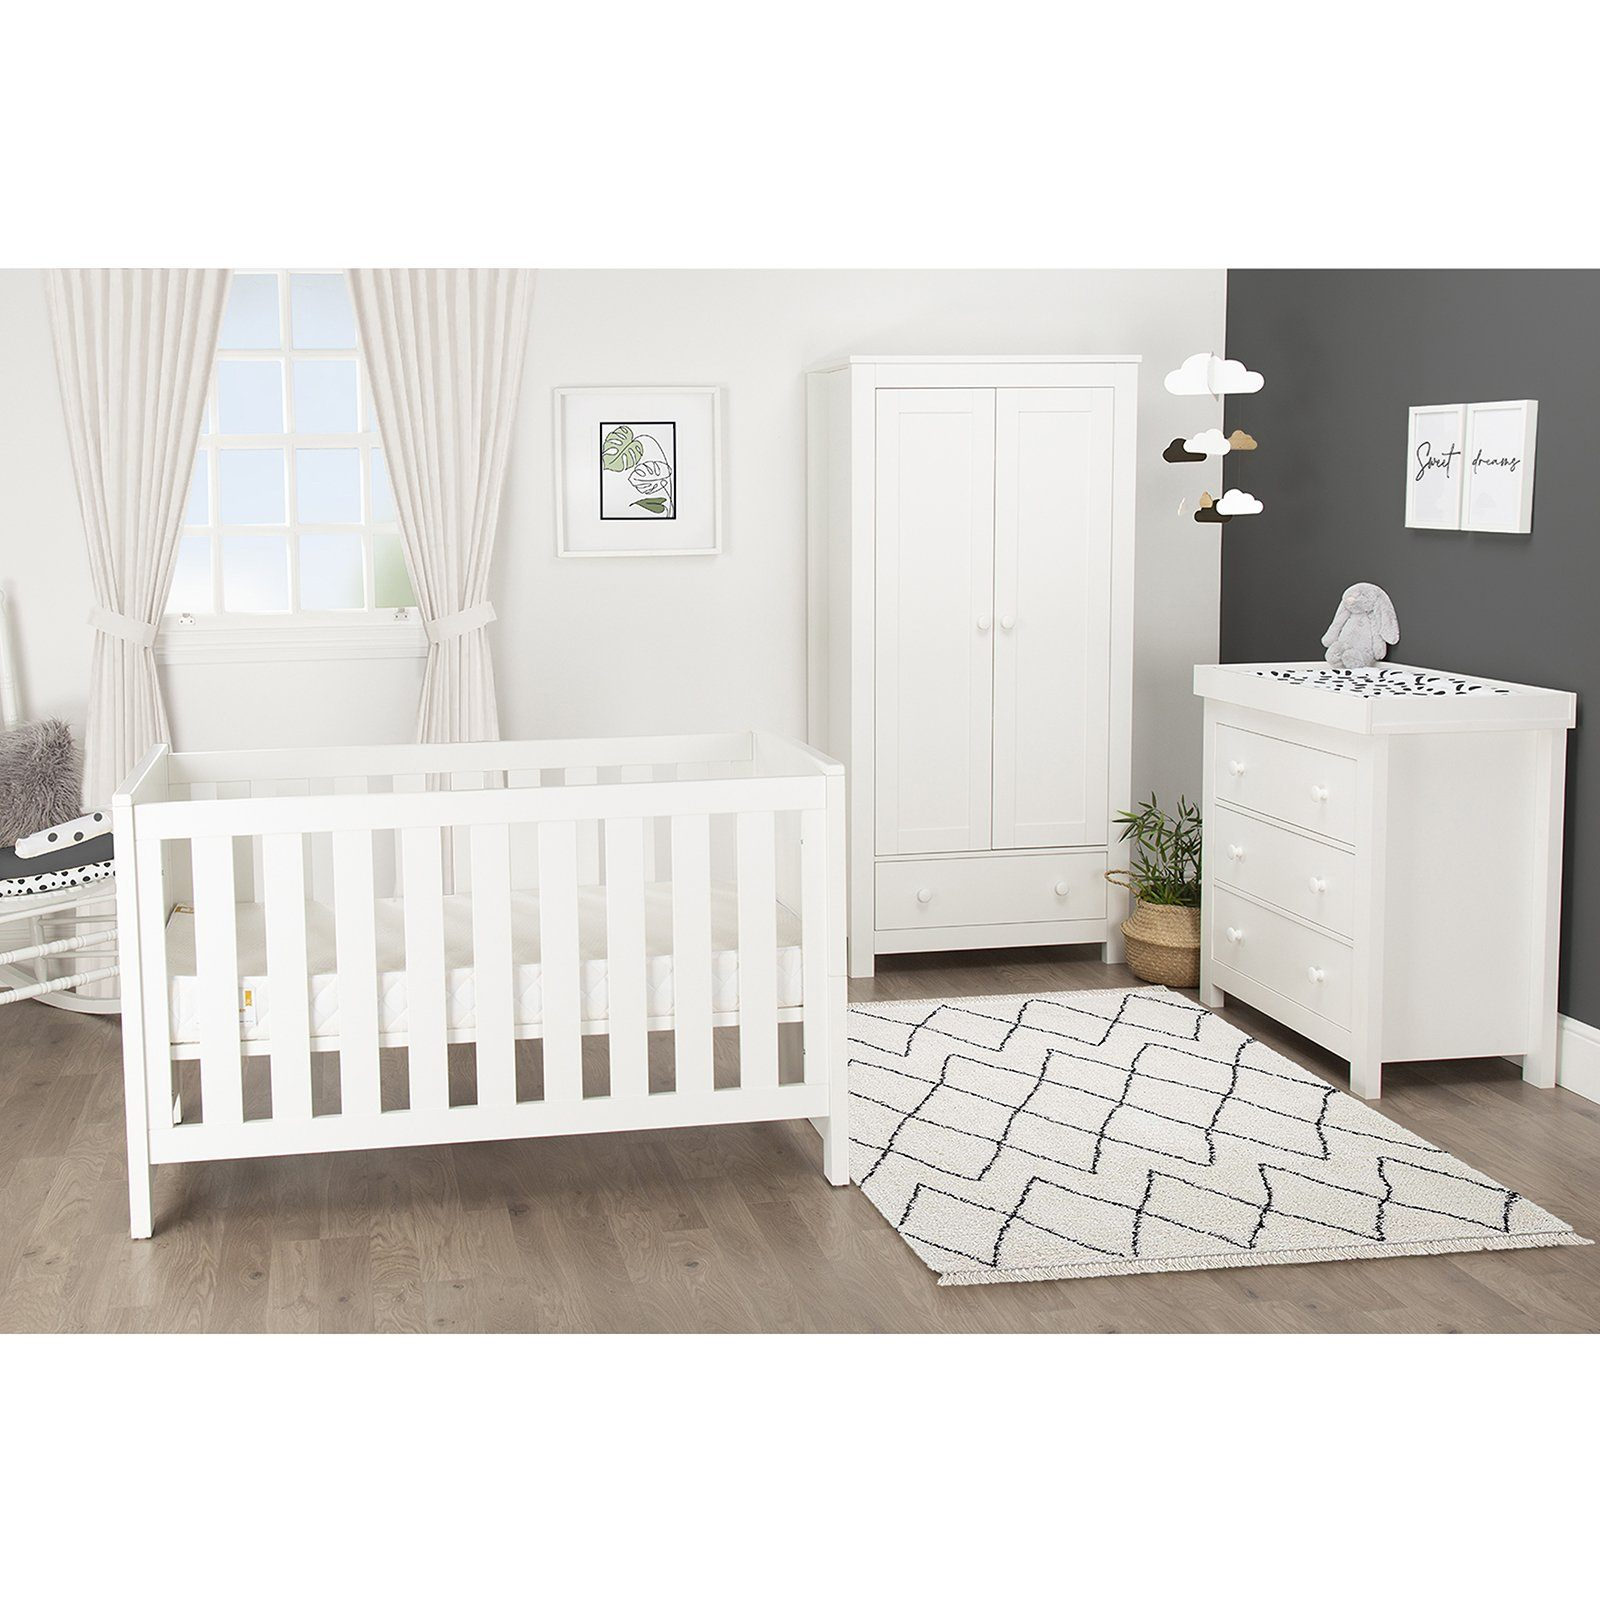 Aylesbury 3pc set - Cot Bed with mattress included, 3 drawer dresser & Changer and 2 Door double wardrobe - White Furniture CuddleCo